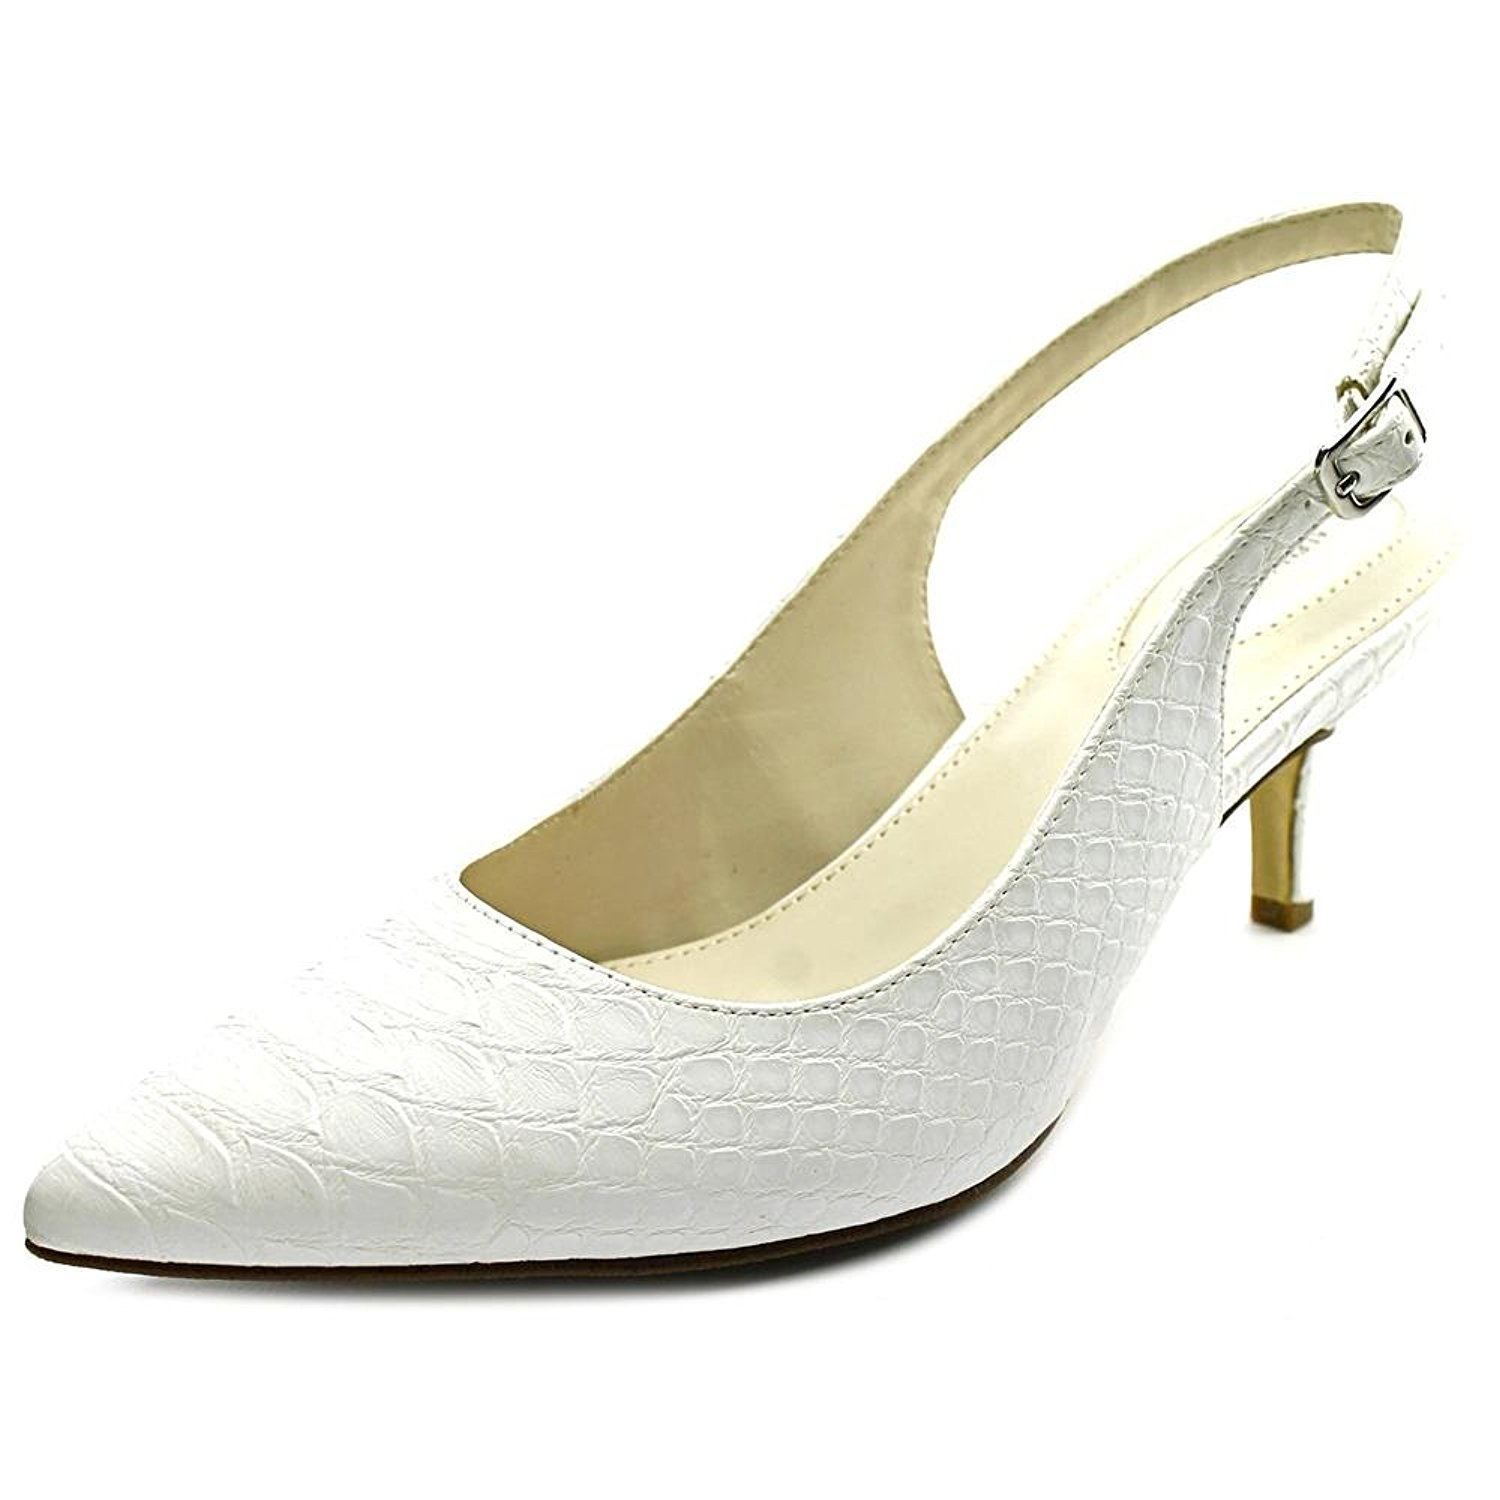 89ee22e8e116a Details about Alfani Womens Babbsy Pointed Toe SlingBack Classic Pumps,  White, Size 8.0 NW9H